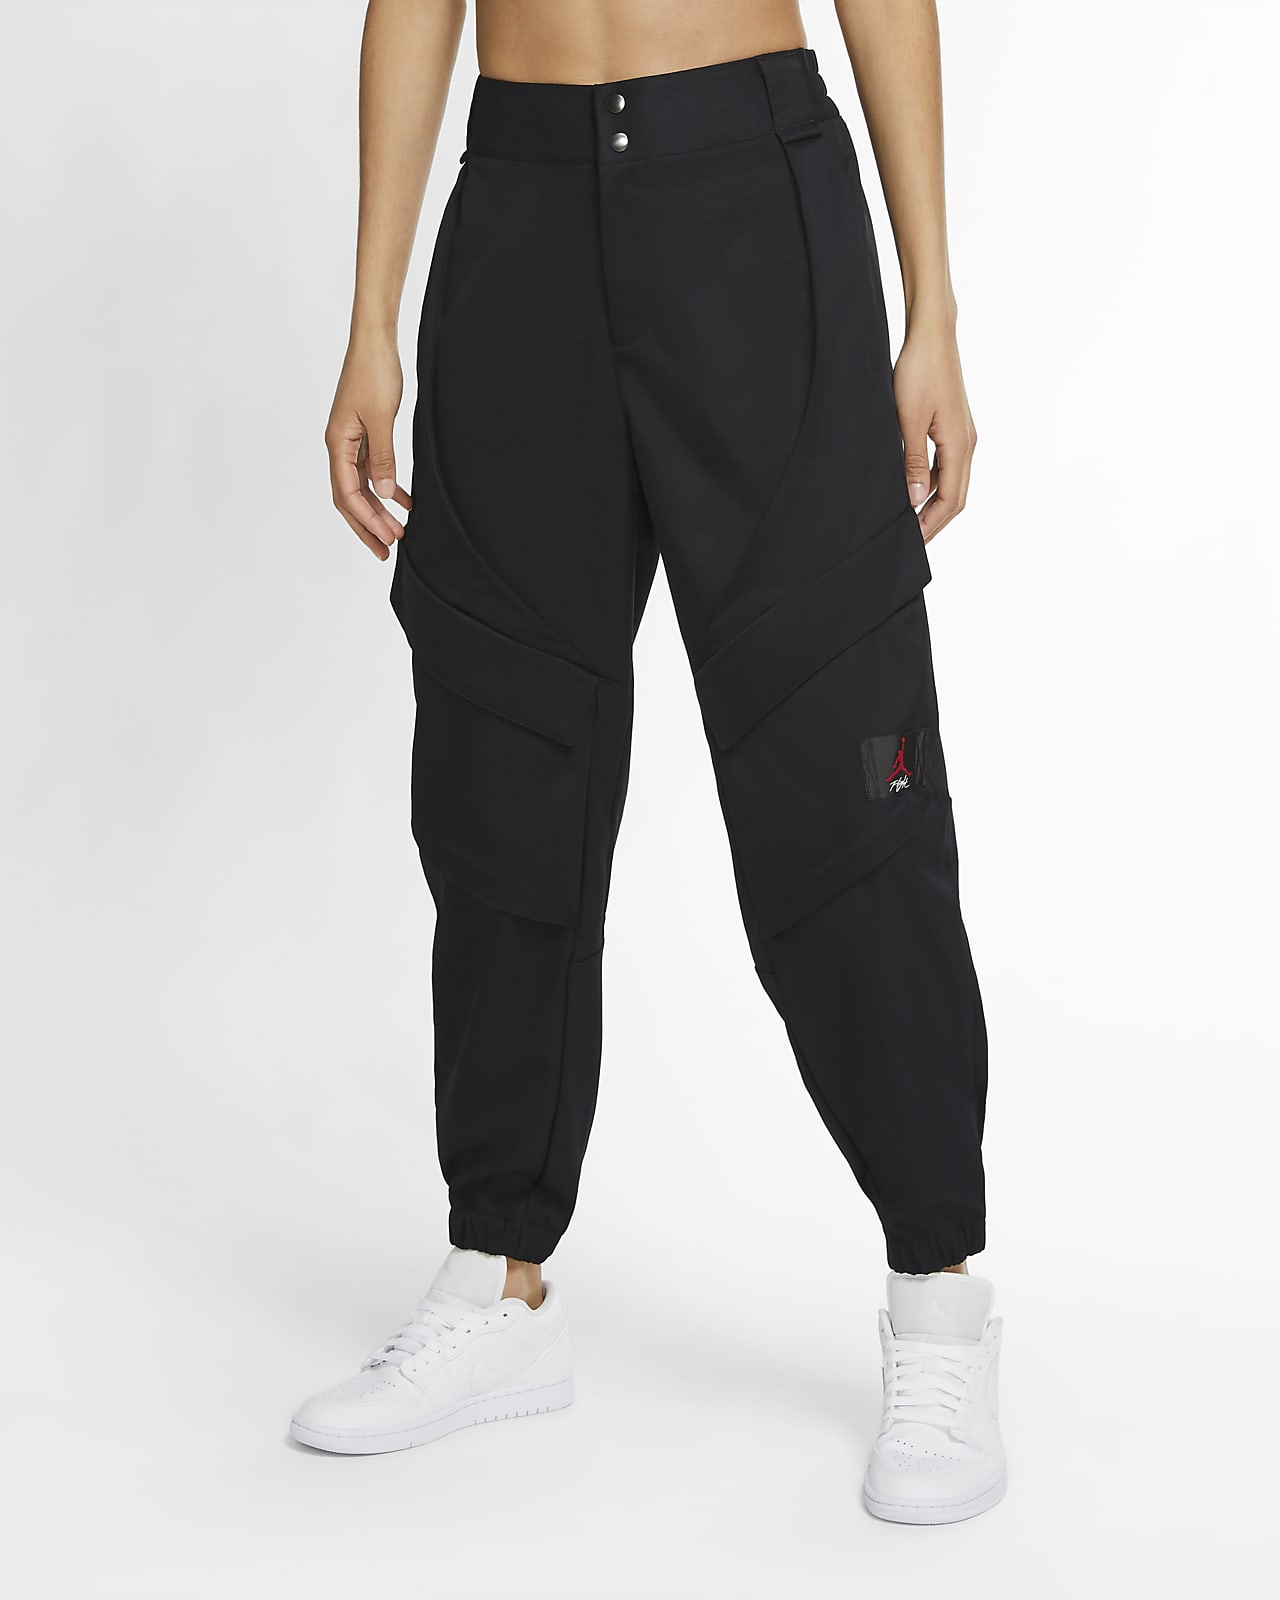 Jordan Essentials Women's Utility Trousers